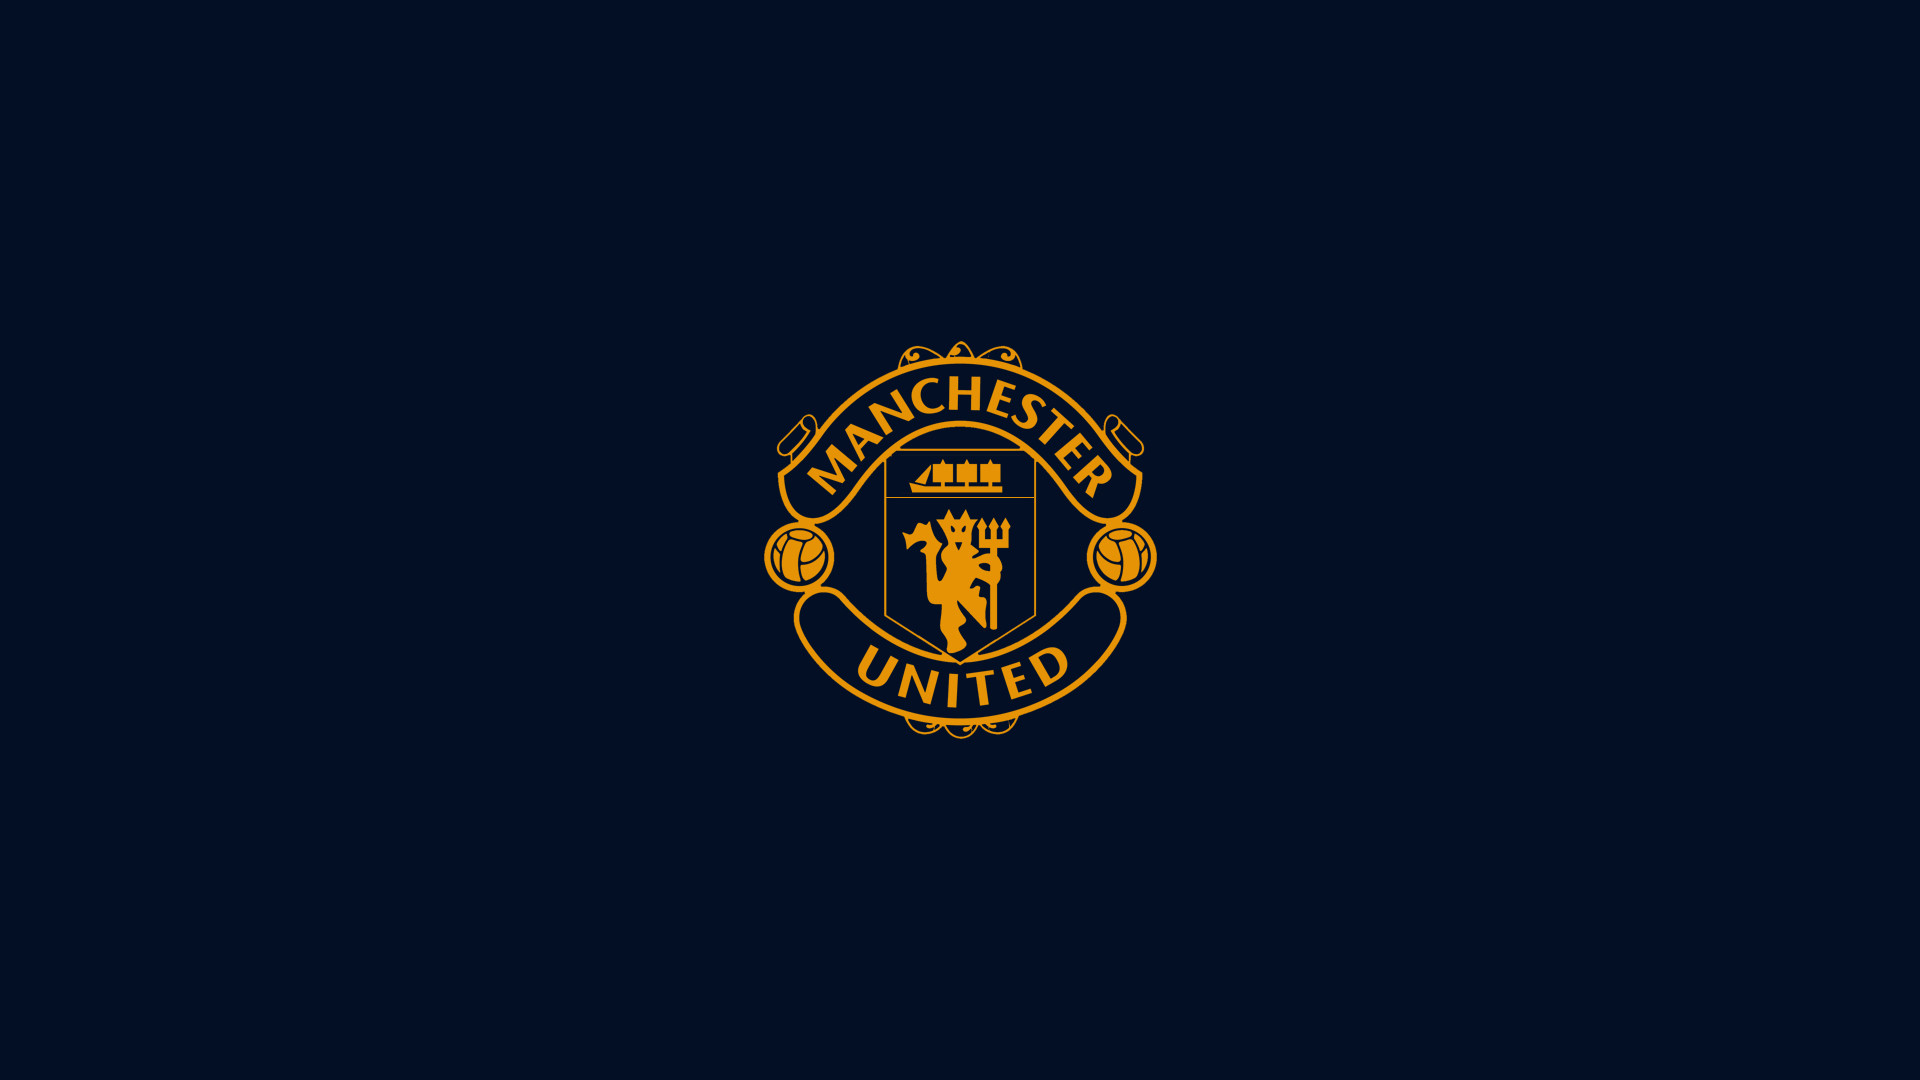 Manchester United Wallpaper Iphone X Man Utd Backgrounds 69 Images